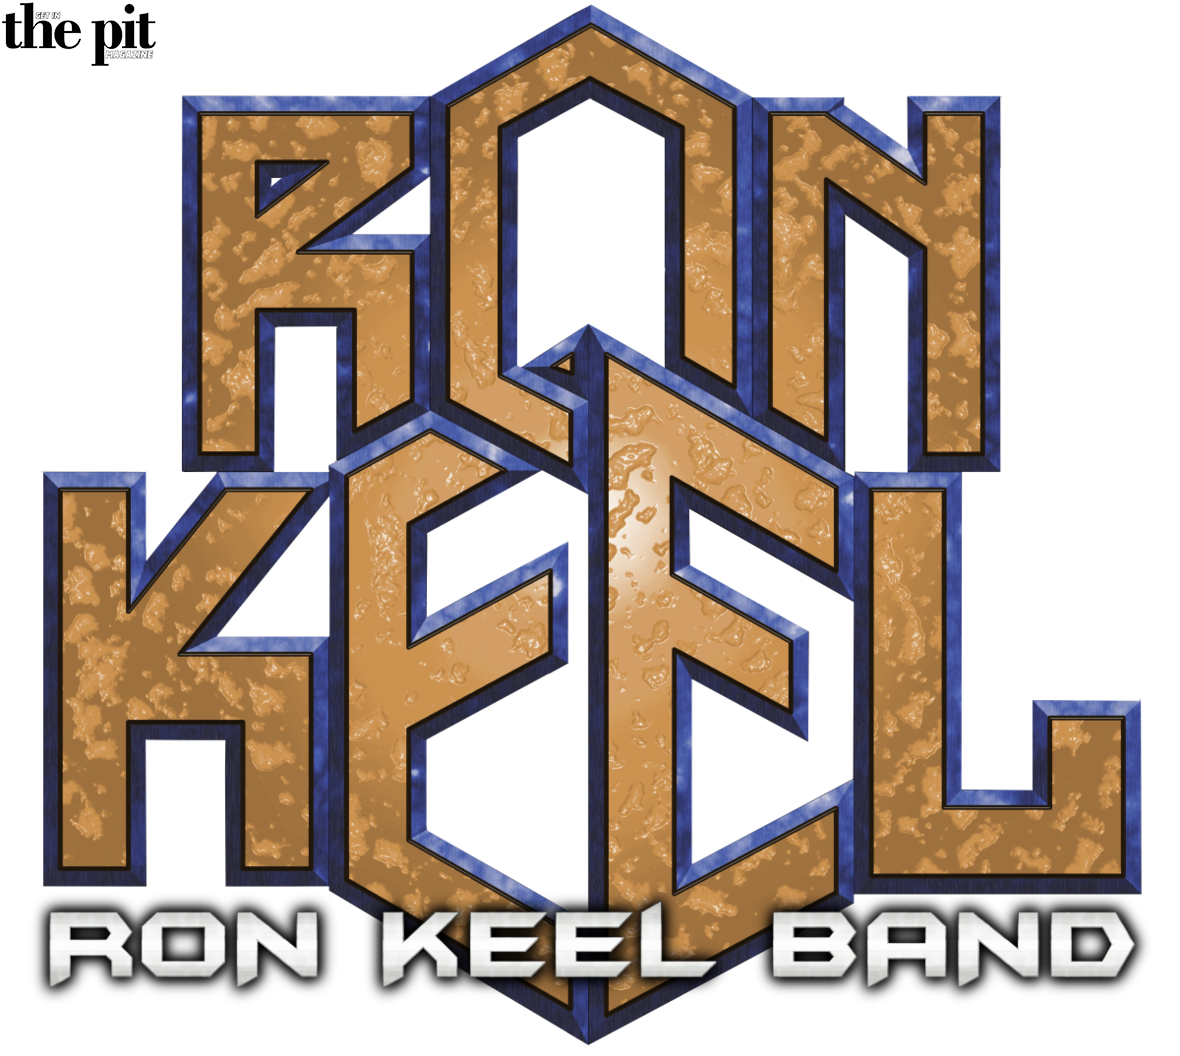 The Pit Magazine, Ron Keel, Ron Keel Band, Fight Like a Band, Record Release